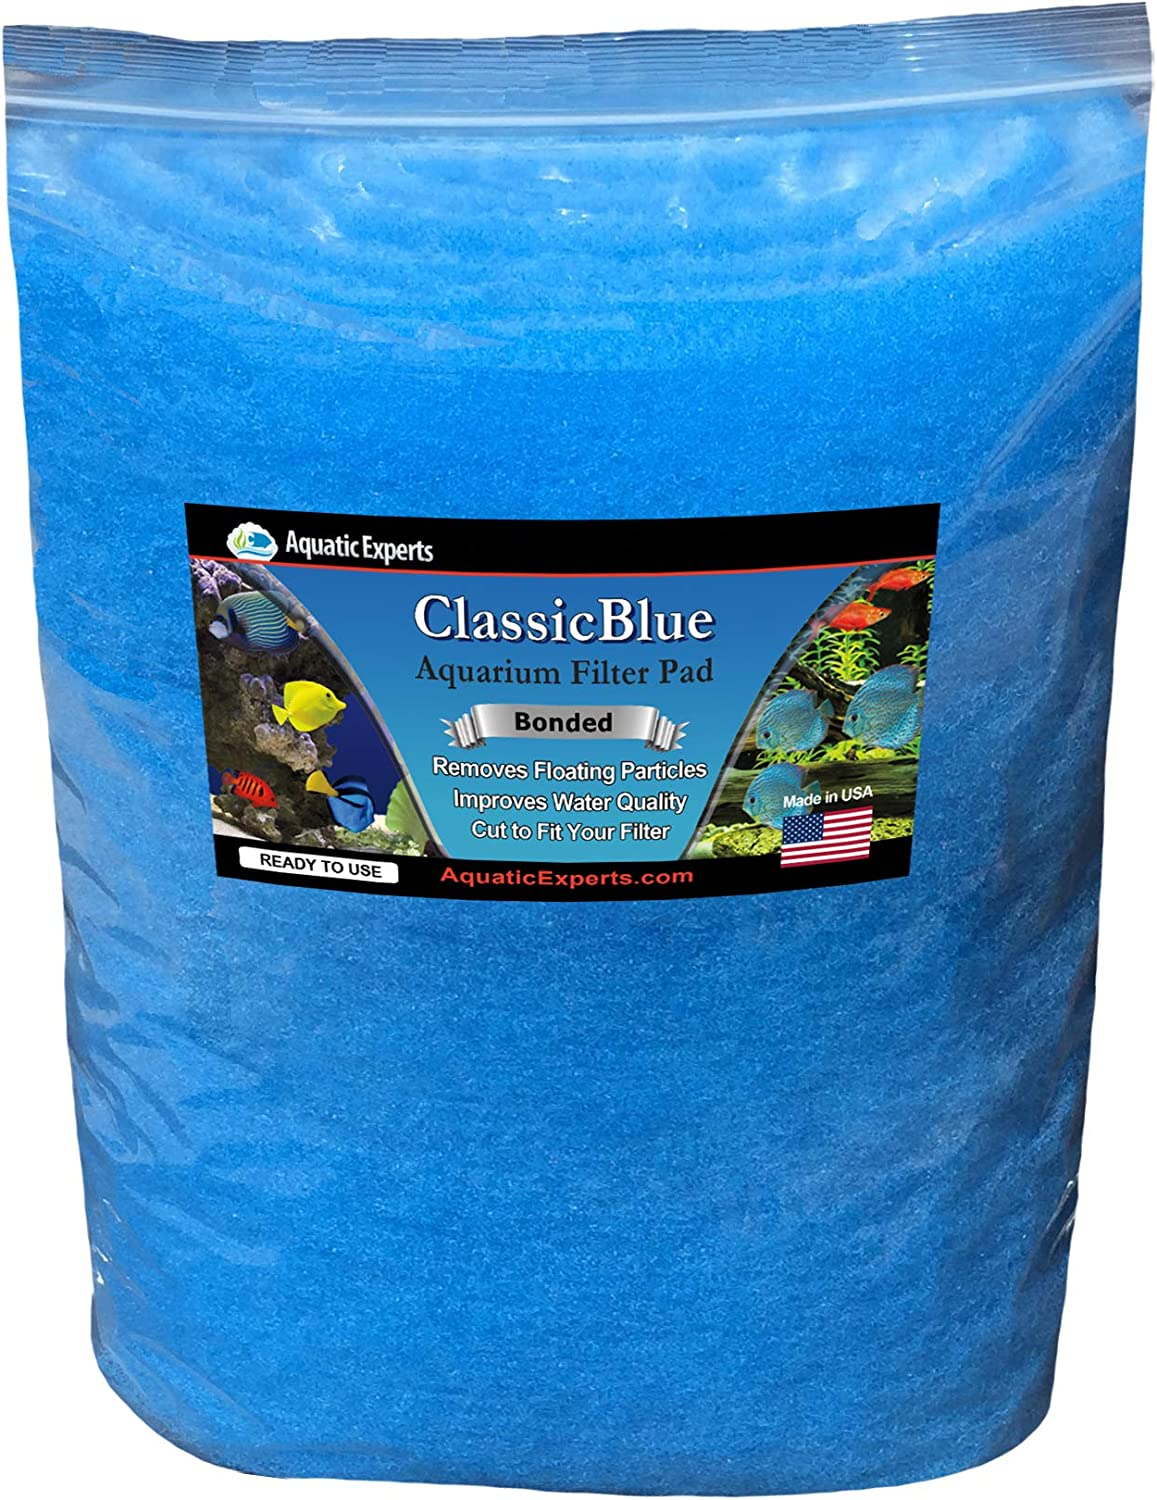 Aquatic Experts Classic Bonded Aquarium Filter Pad 12 Inches by 72 Inches by .75 Inch  bluee and White Aquarium Filter Media Roll Bulk Can Be Cut to Fit Most Filters, Made in USA